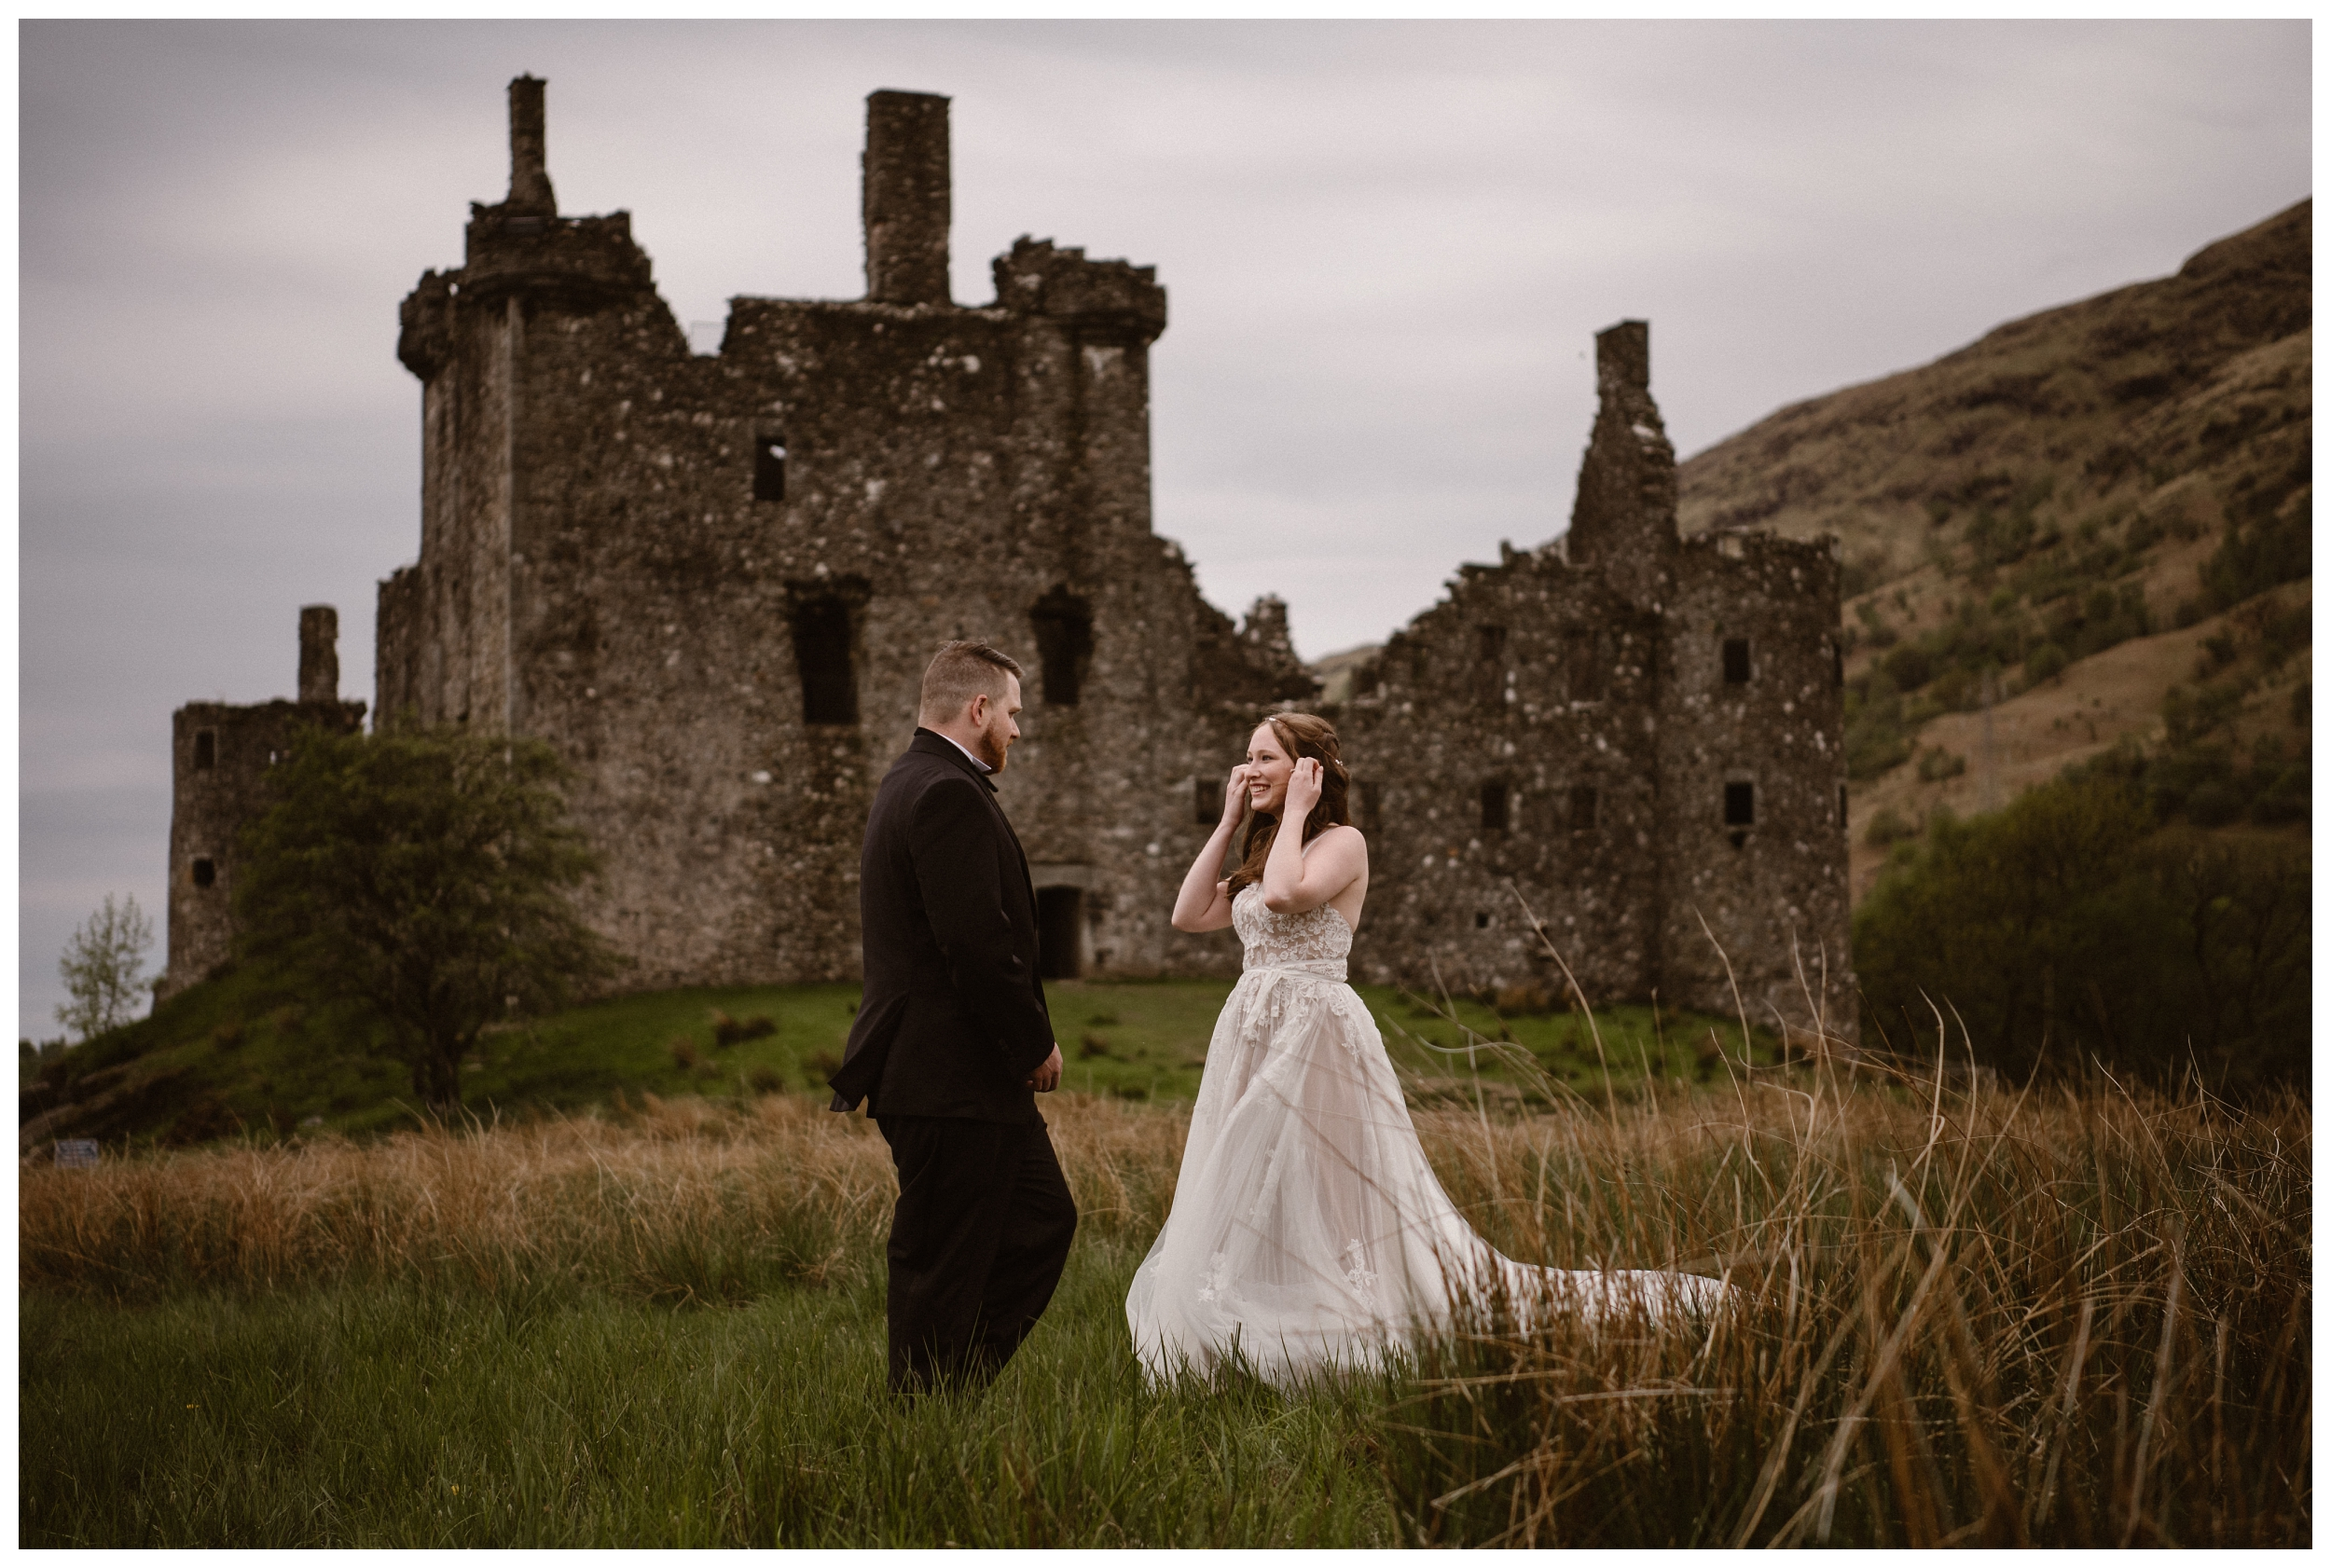 Daniel turns for his first look of his bride Elissa with the ruins of Kilchurn Castle behind them in the Scottish Highlands before their adventure destination wedding elopement. Photo by Maddie Mae, Adventure Instead.